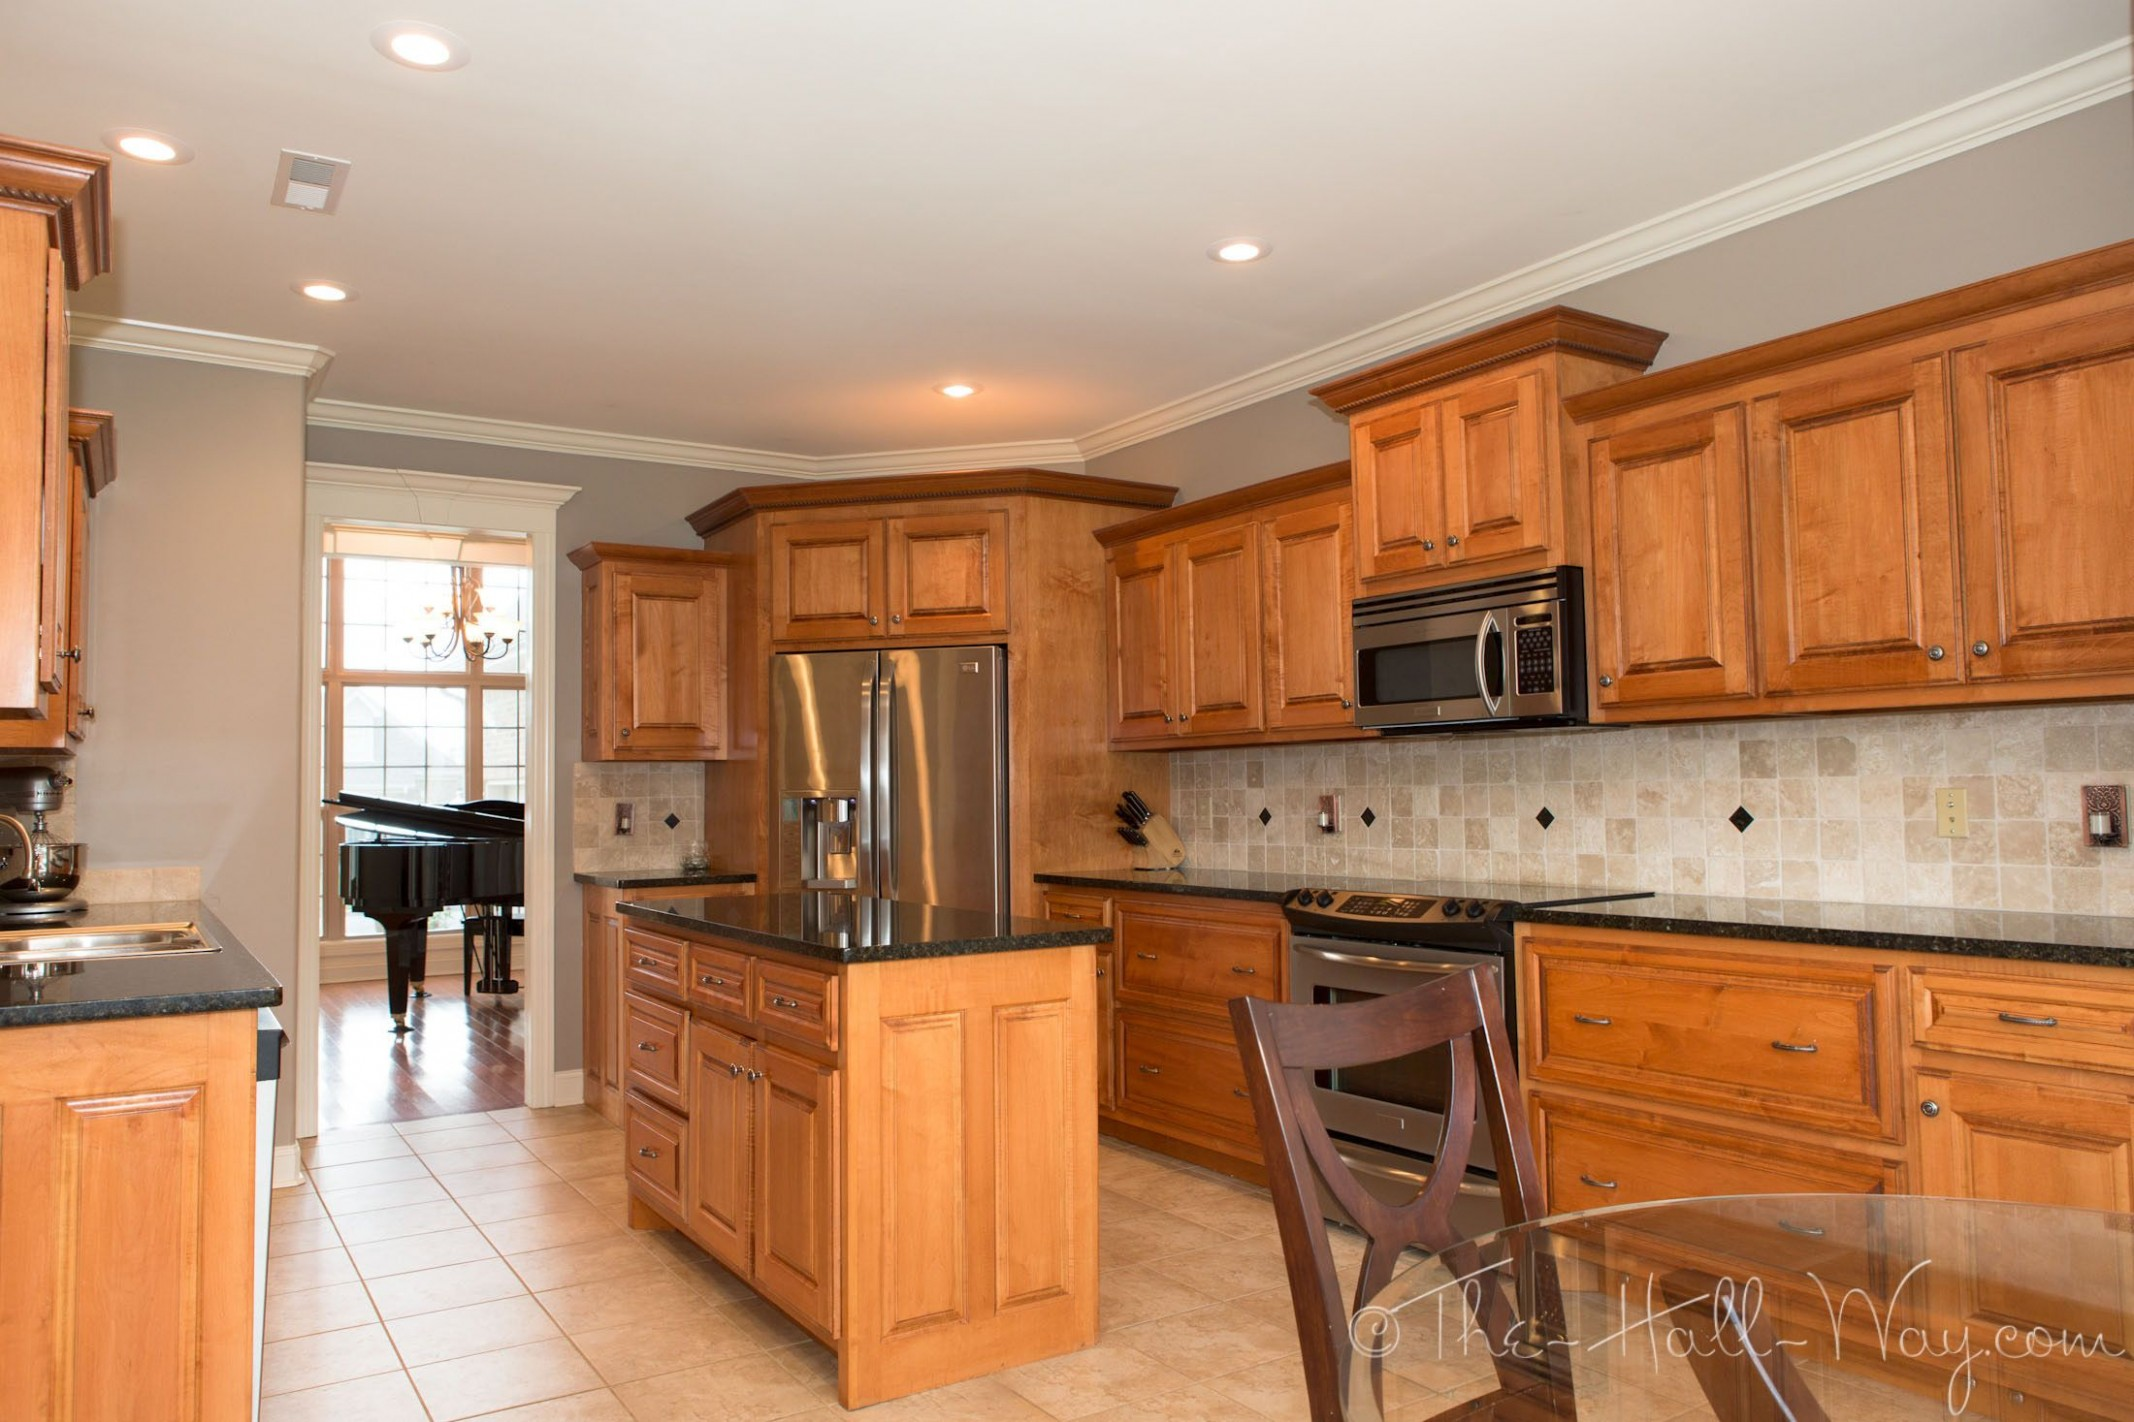 Summer Tour Of Homes  Maple kitchen cabinets, Kitchen renovation  - Maple Kitchen Cabinets And Taupe Walls